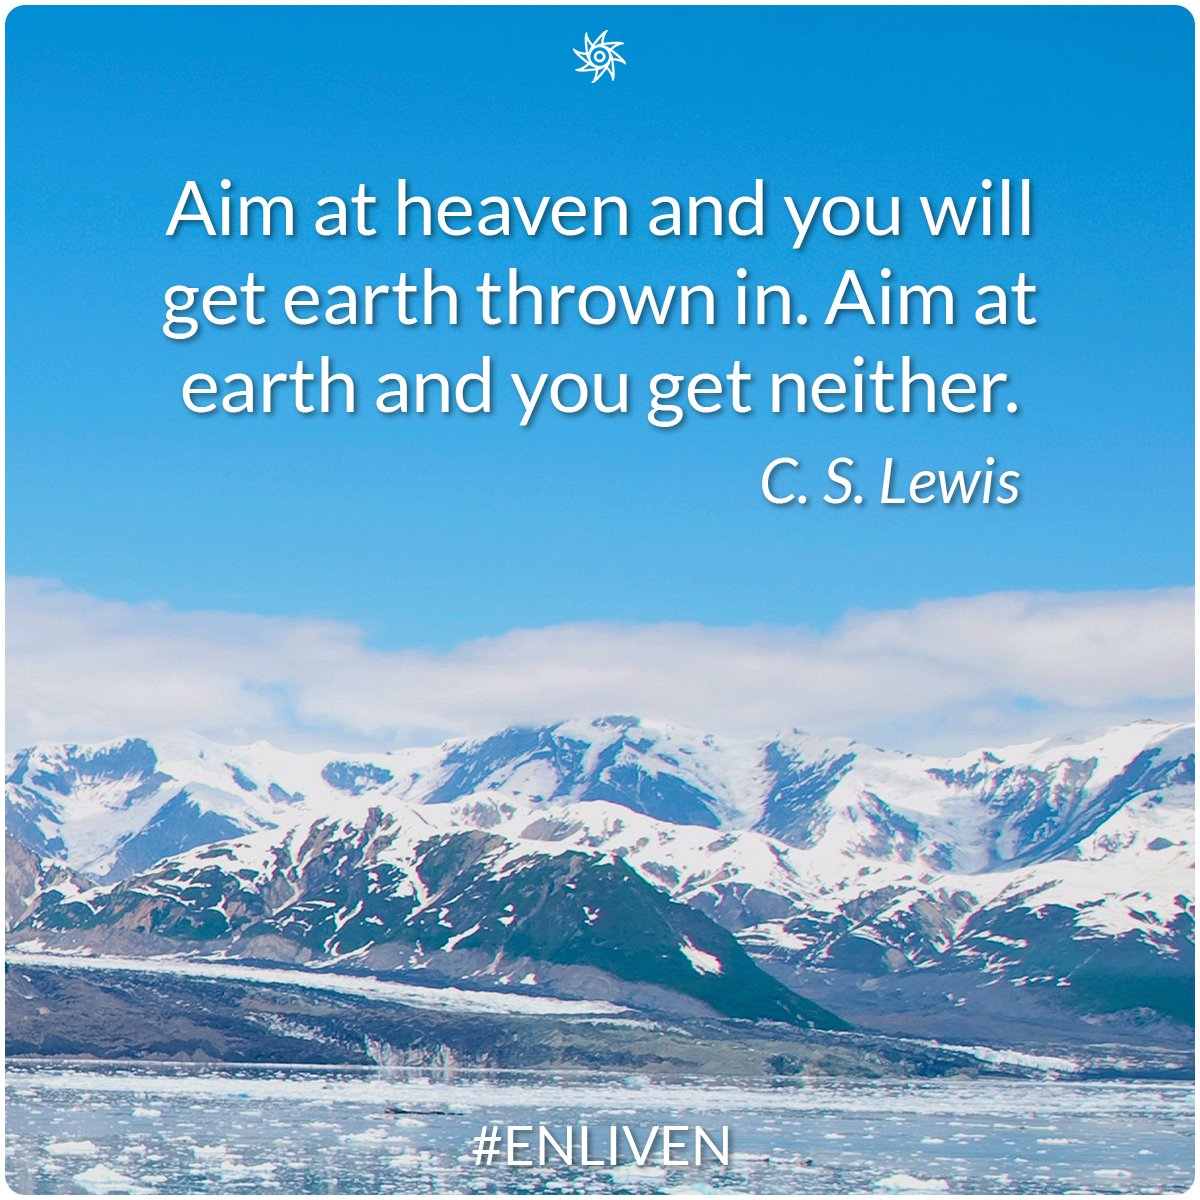 Enliven On Twitter Aim At Heaven And You Will Get Earth Thrown In